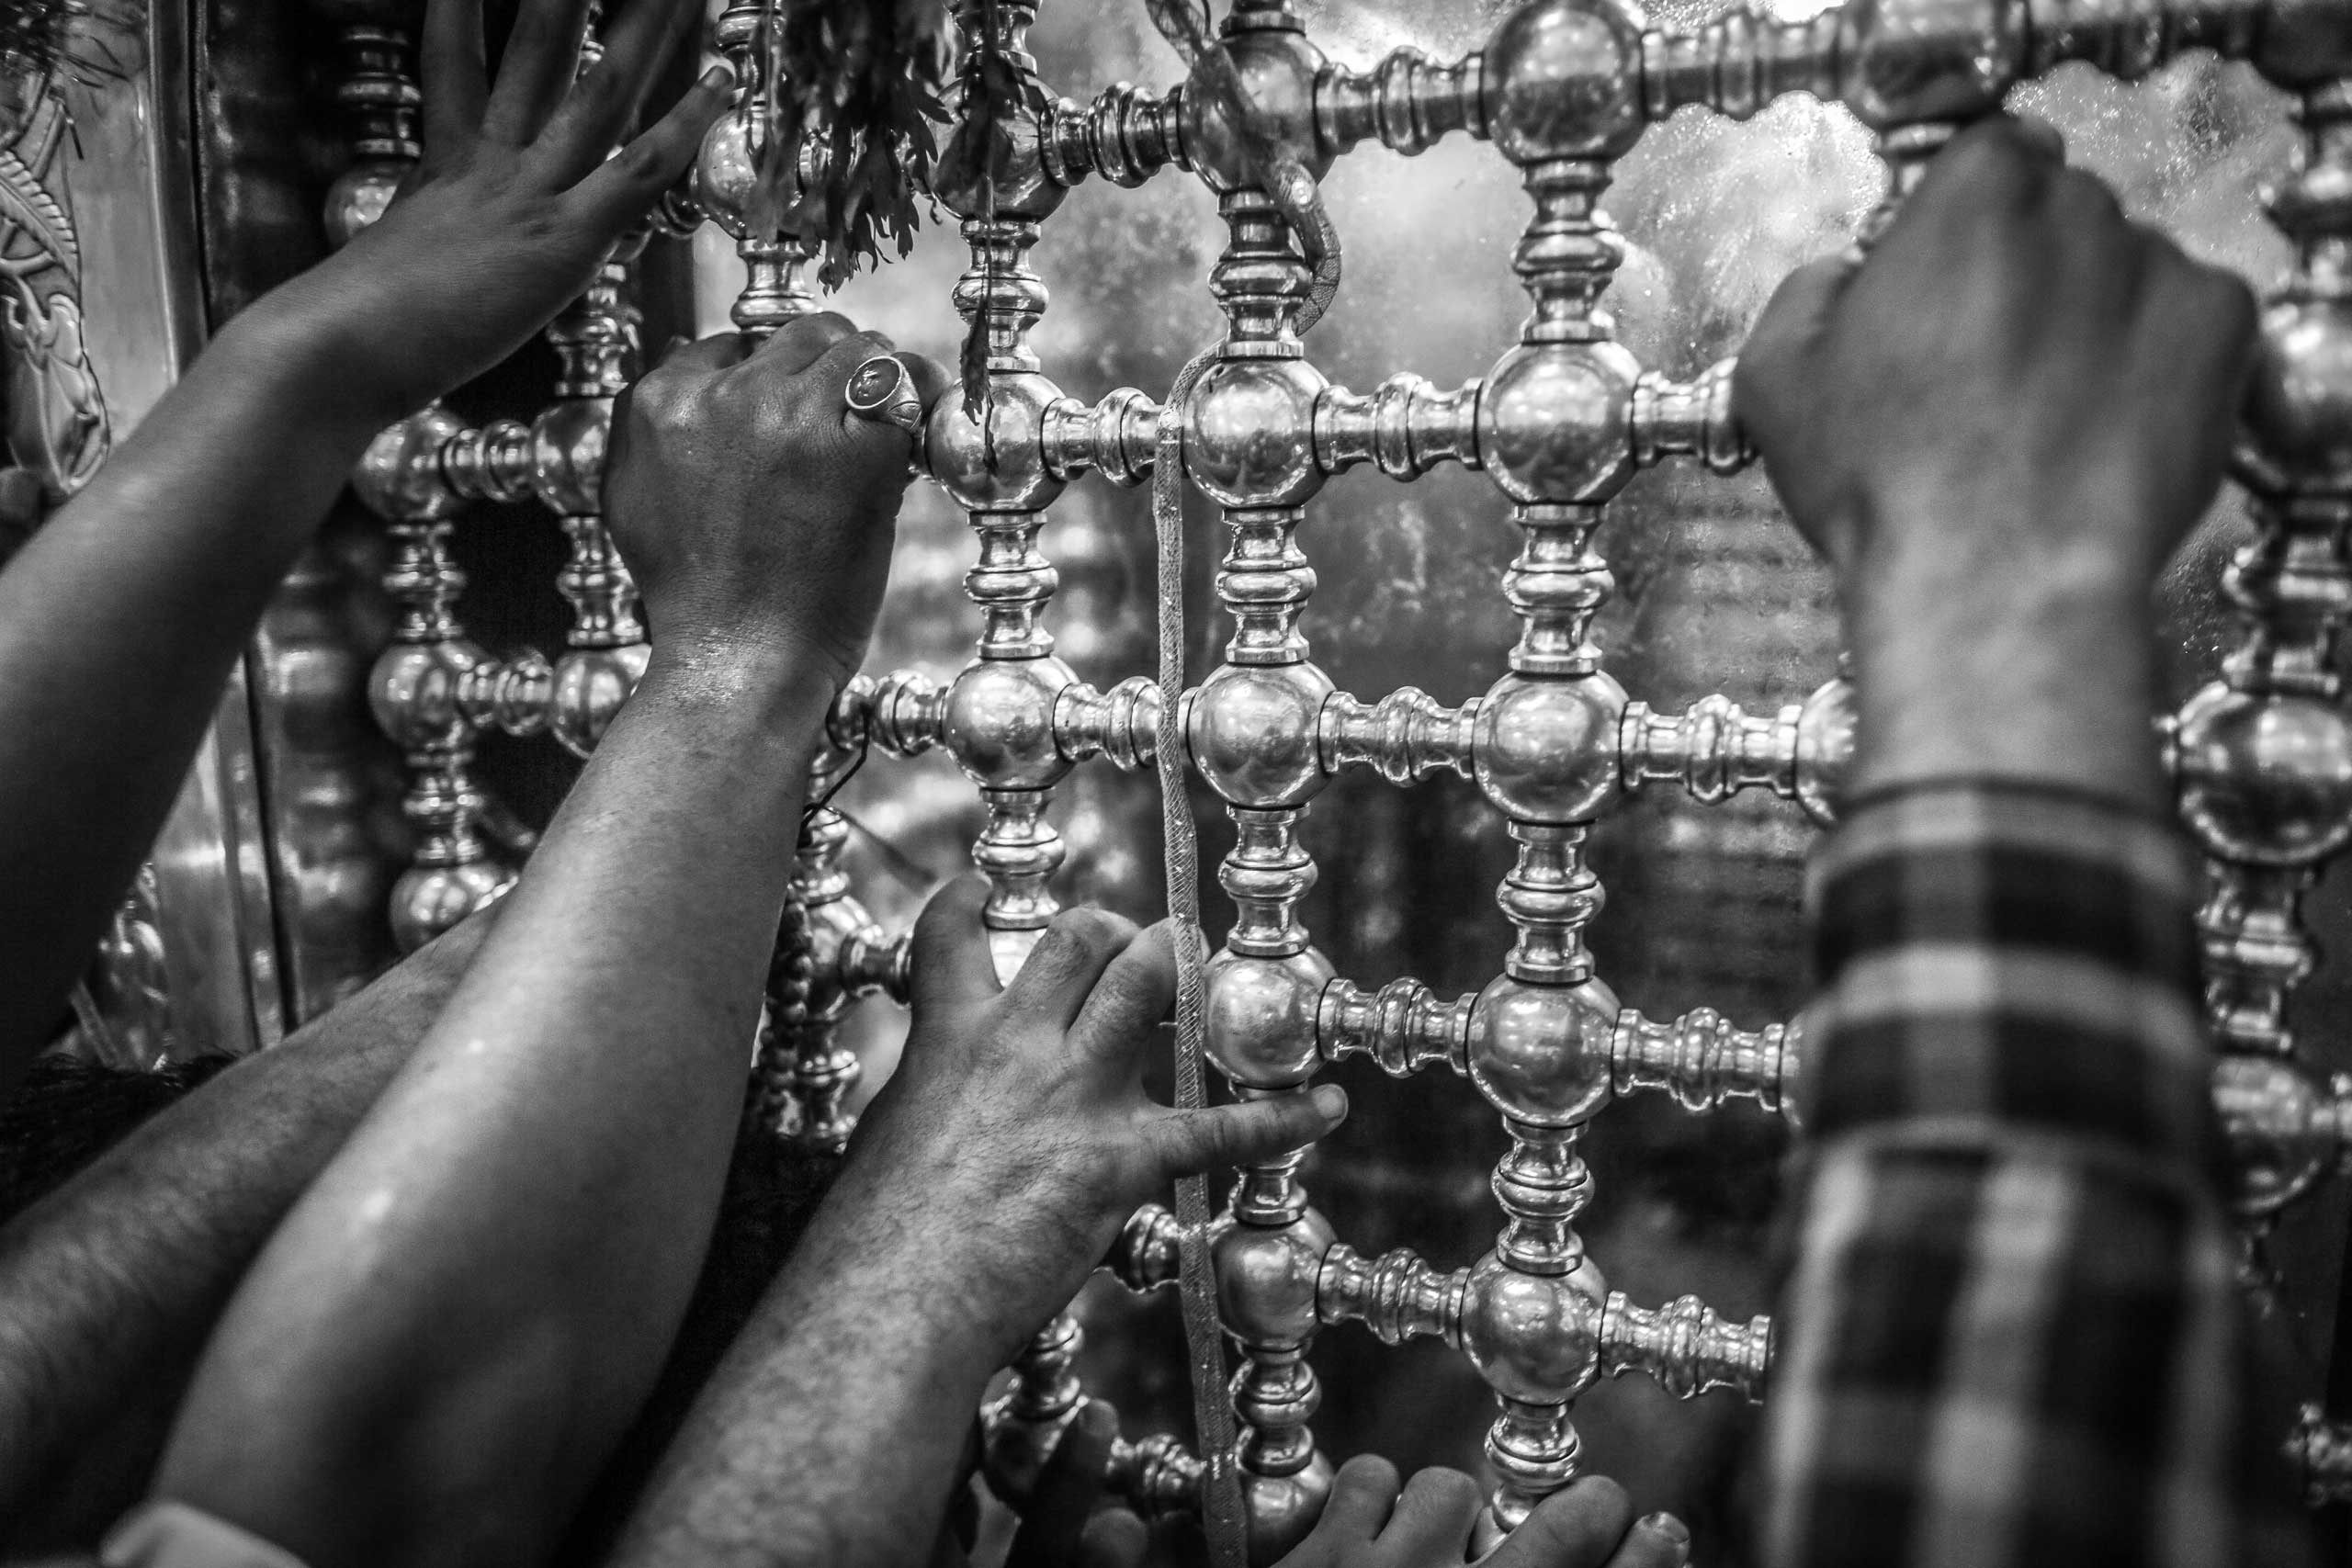 Worshippers surround the shrine of Sayeda Zeinab, granddaughter of the Prophet Muhammad, during the celebration of her birthday. Holding the shrine becomes the main goal for the thousands of attendees who then recite prayers or seek blessings through it. Downtown Cairo, Egypt. May 20, 2014.